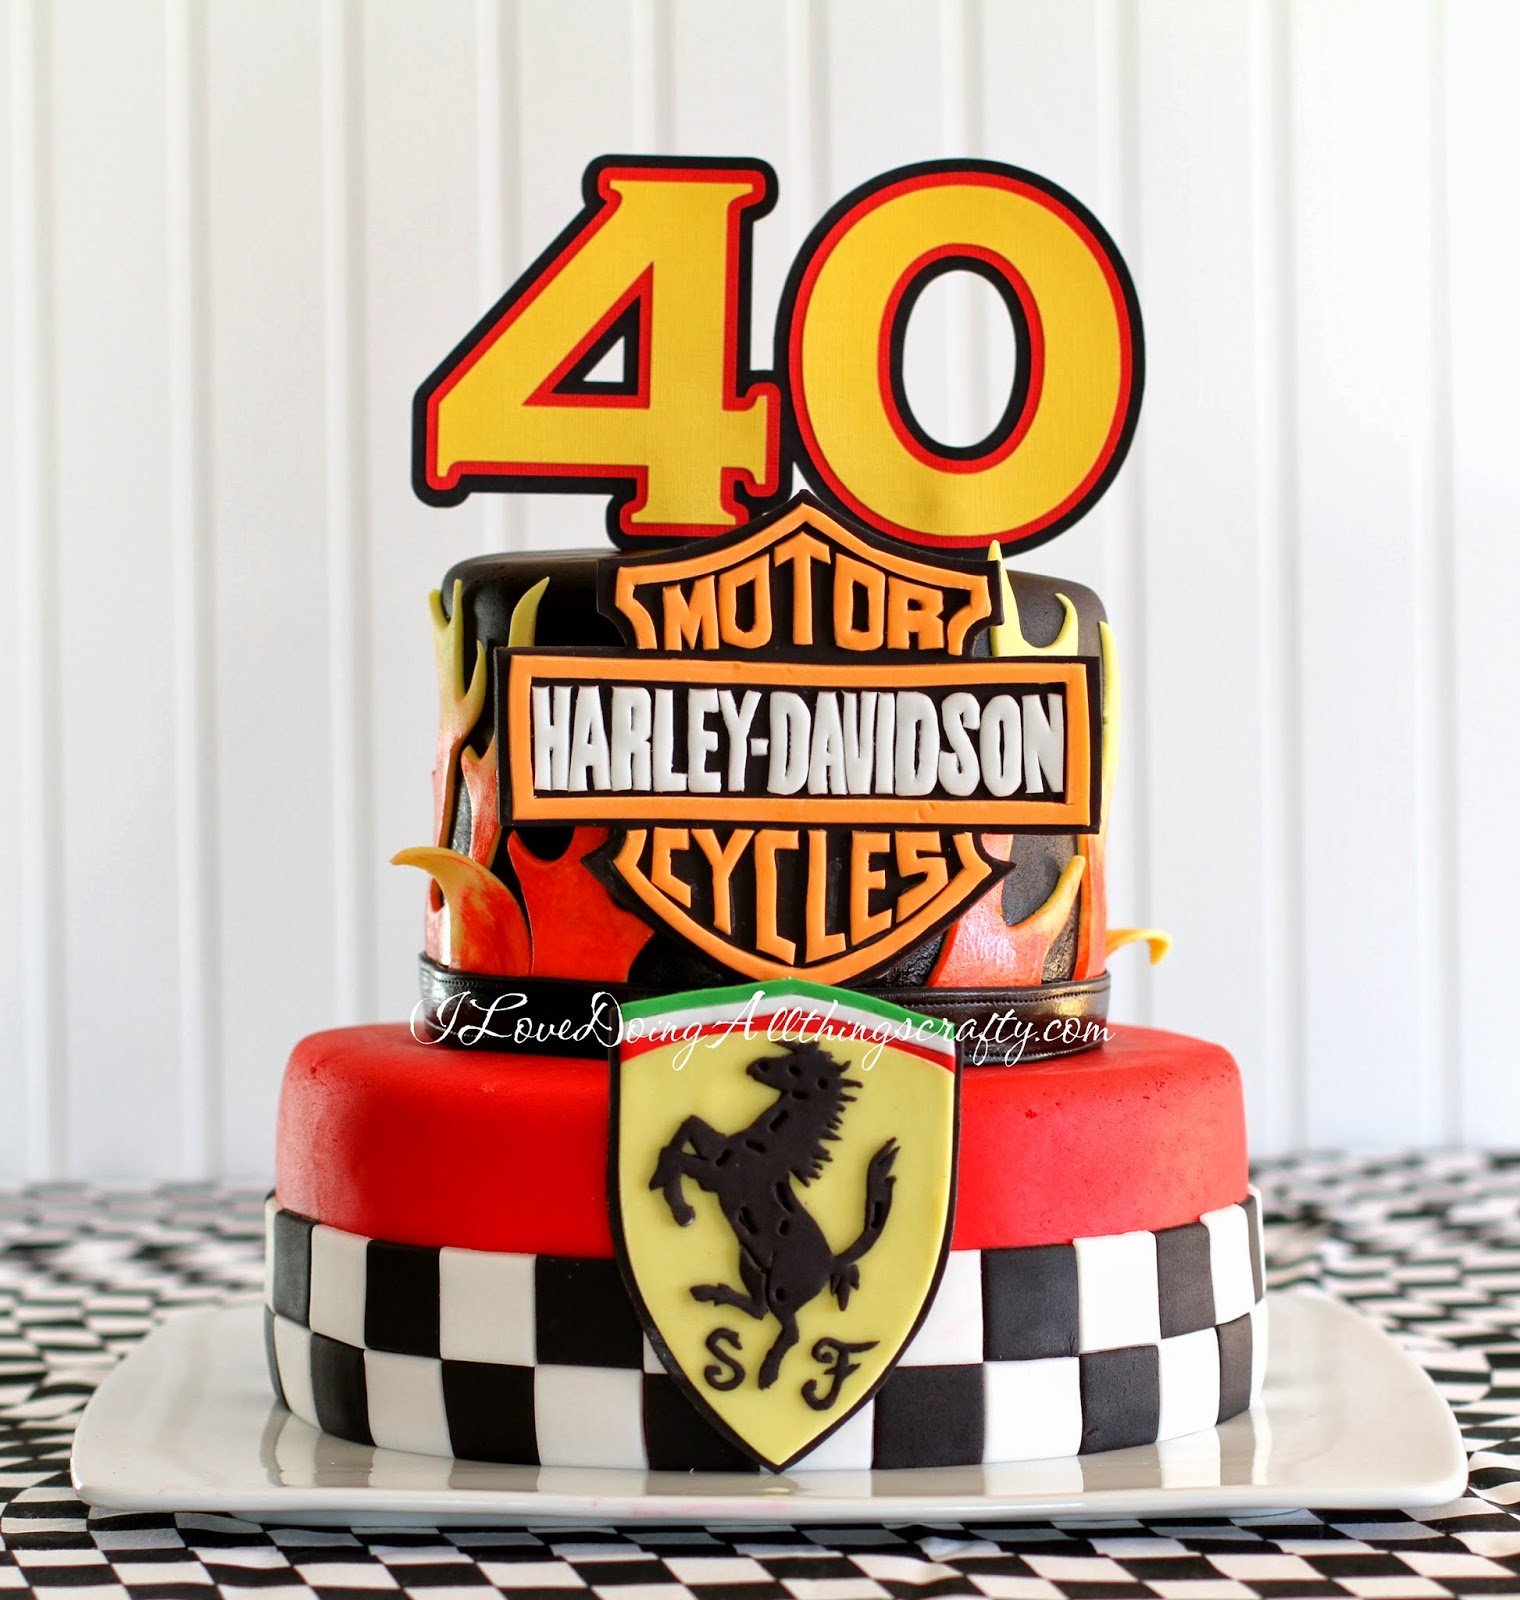 Harley Davidson Ferrari 40th Birthday Cake